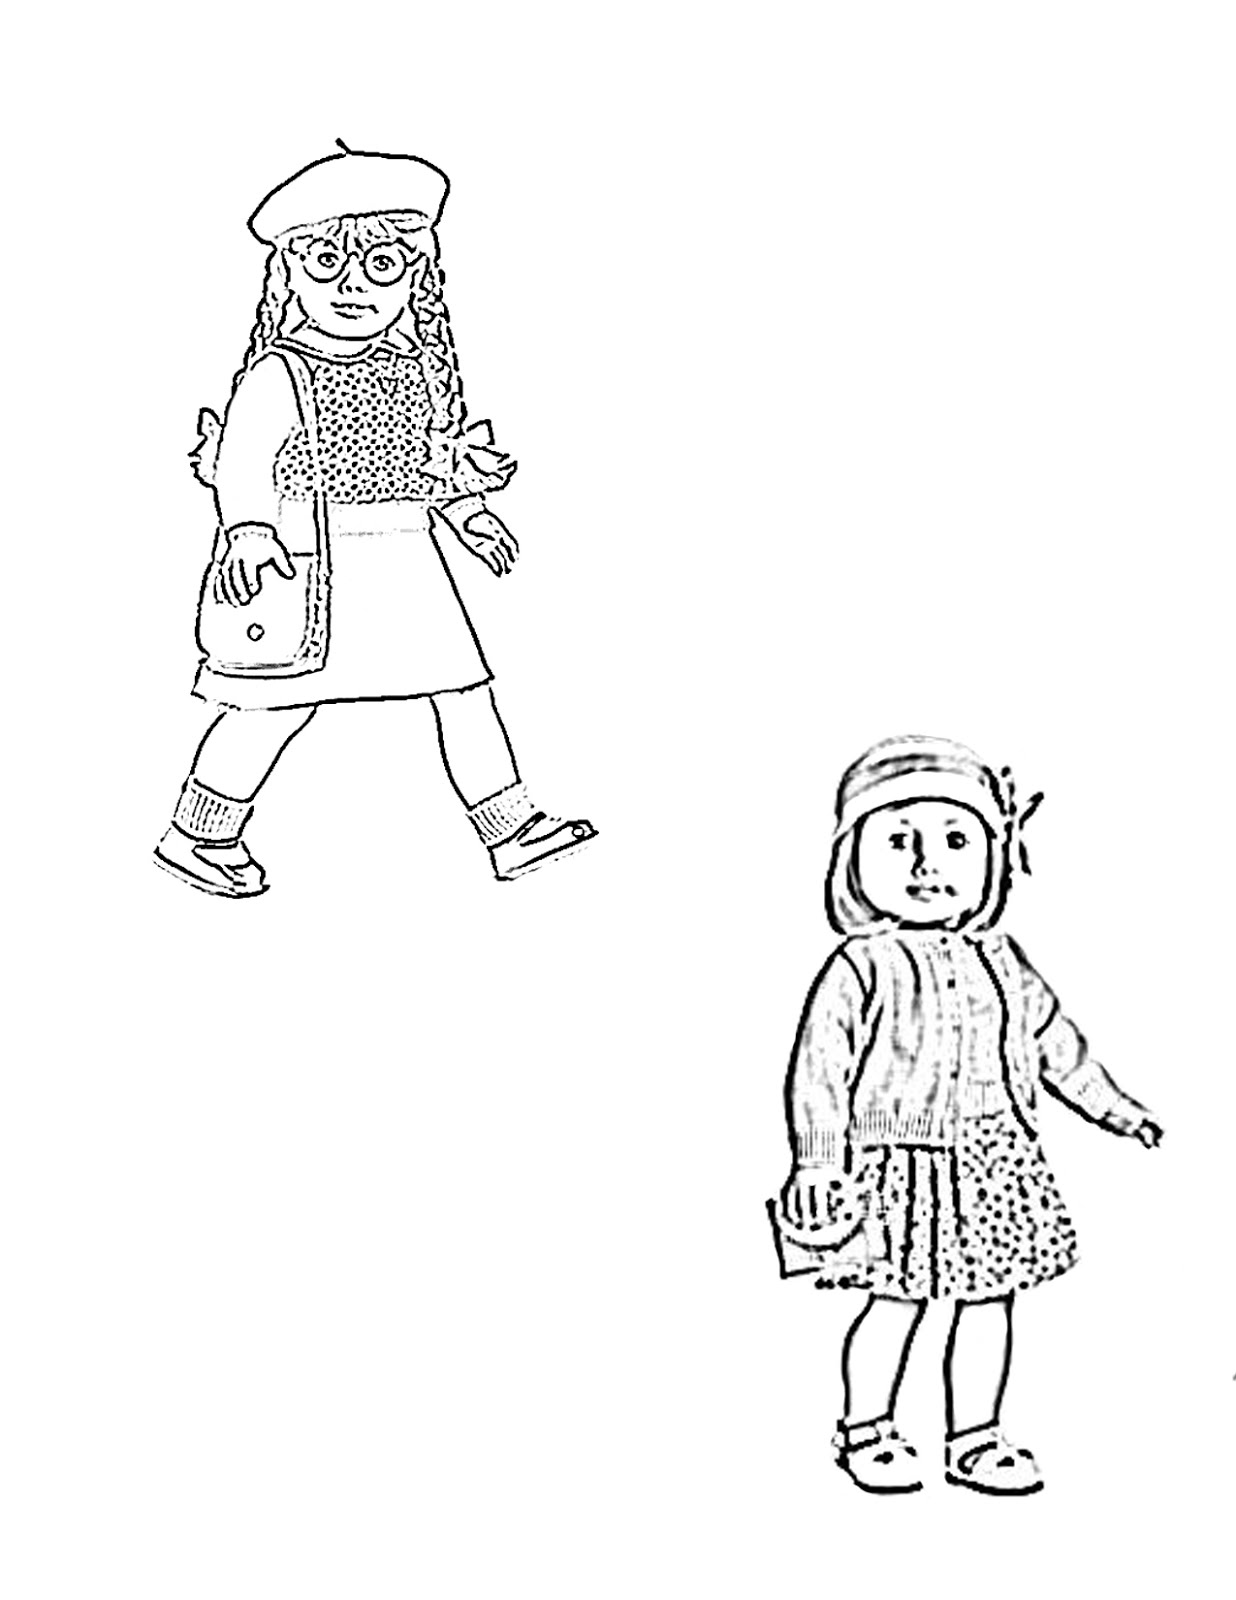 american girl doll coloring pages to print american girl coloring pages best coloring pages for kids doll pages girl coloring print to american